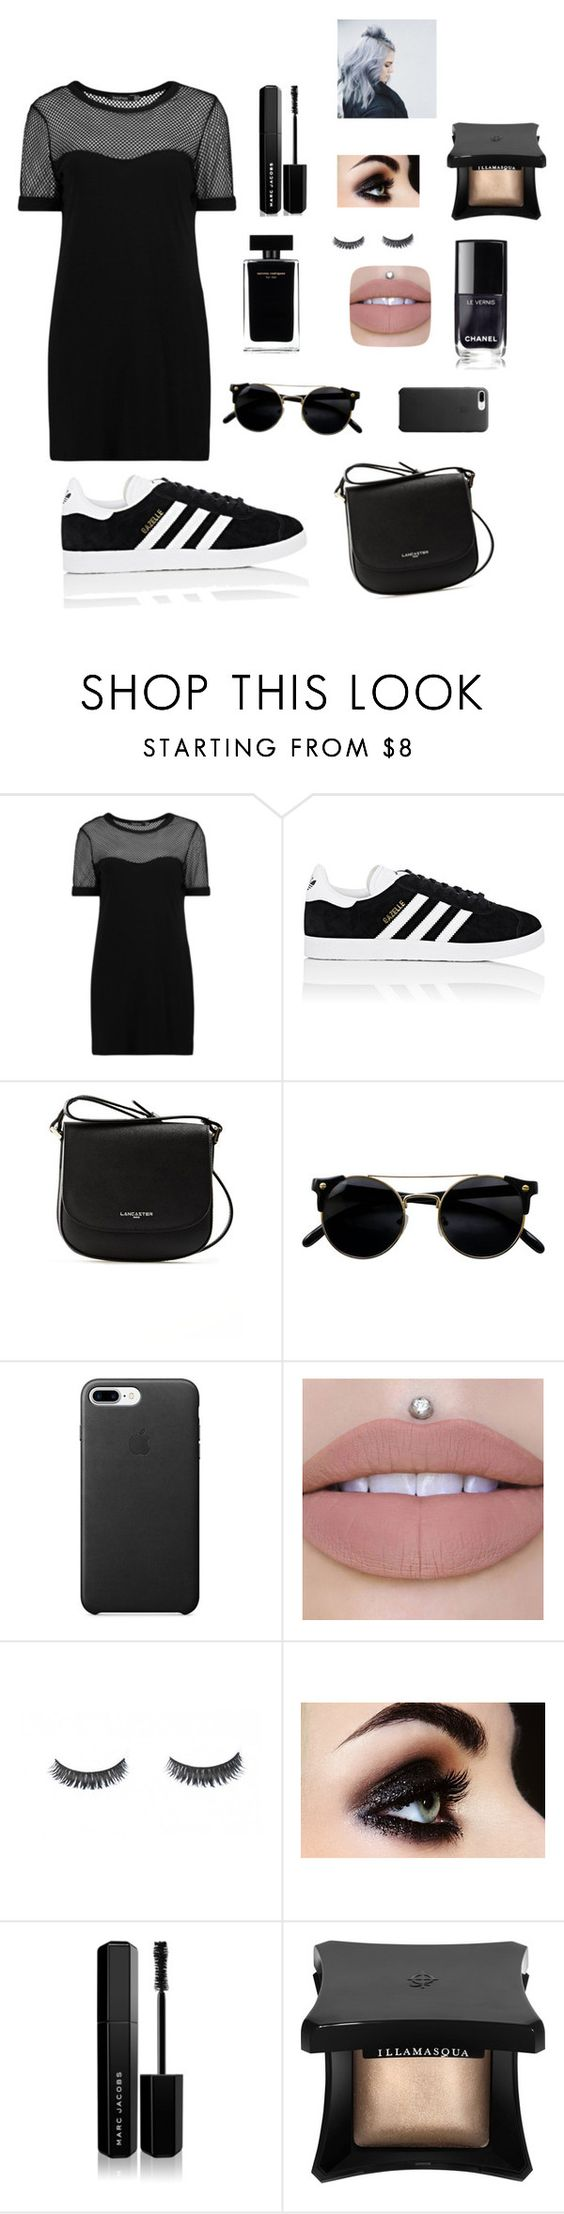 """""""Black Majesty"""" by emilythill2001 ❤ liked on Polyvore featuring Boohoo, adidas, Lancaster, Narciso Rodriguez, Marc Jacobs and Illamasqua"""